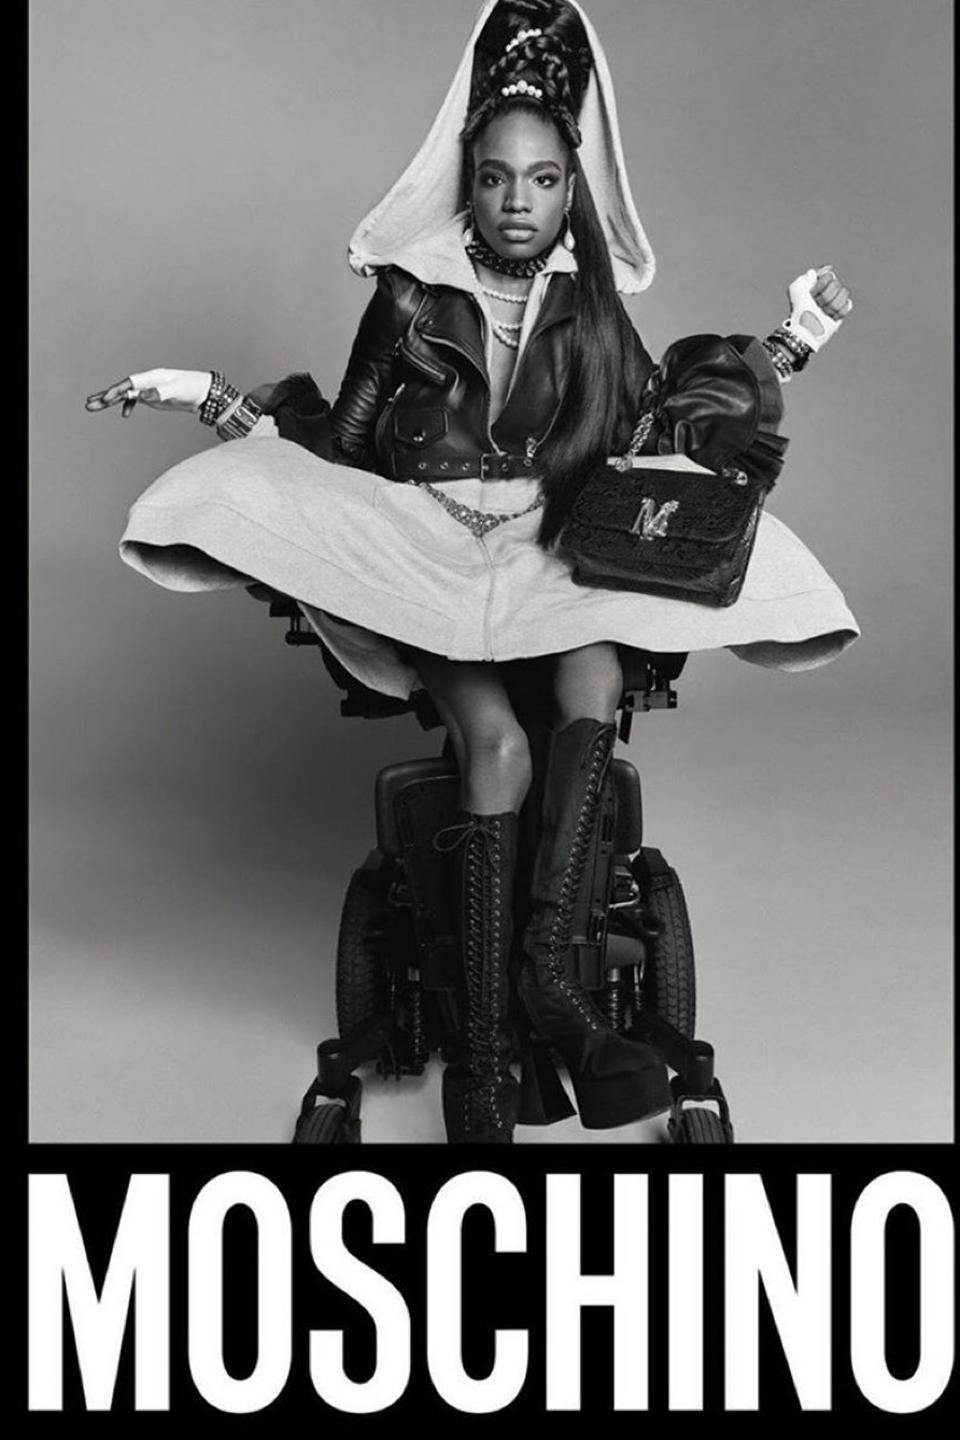 Supermodel Aaron Philip is the face of Moschino